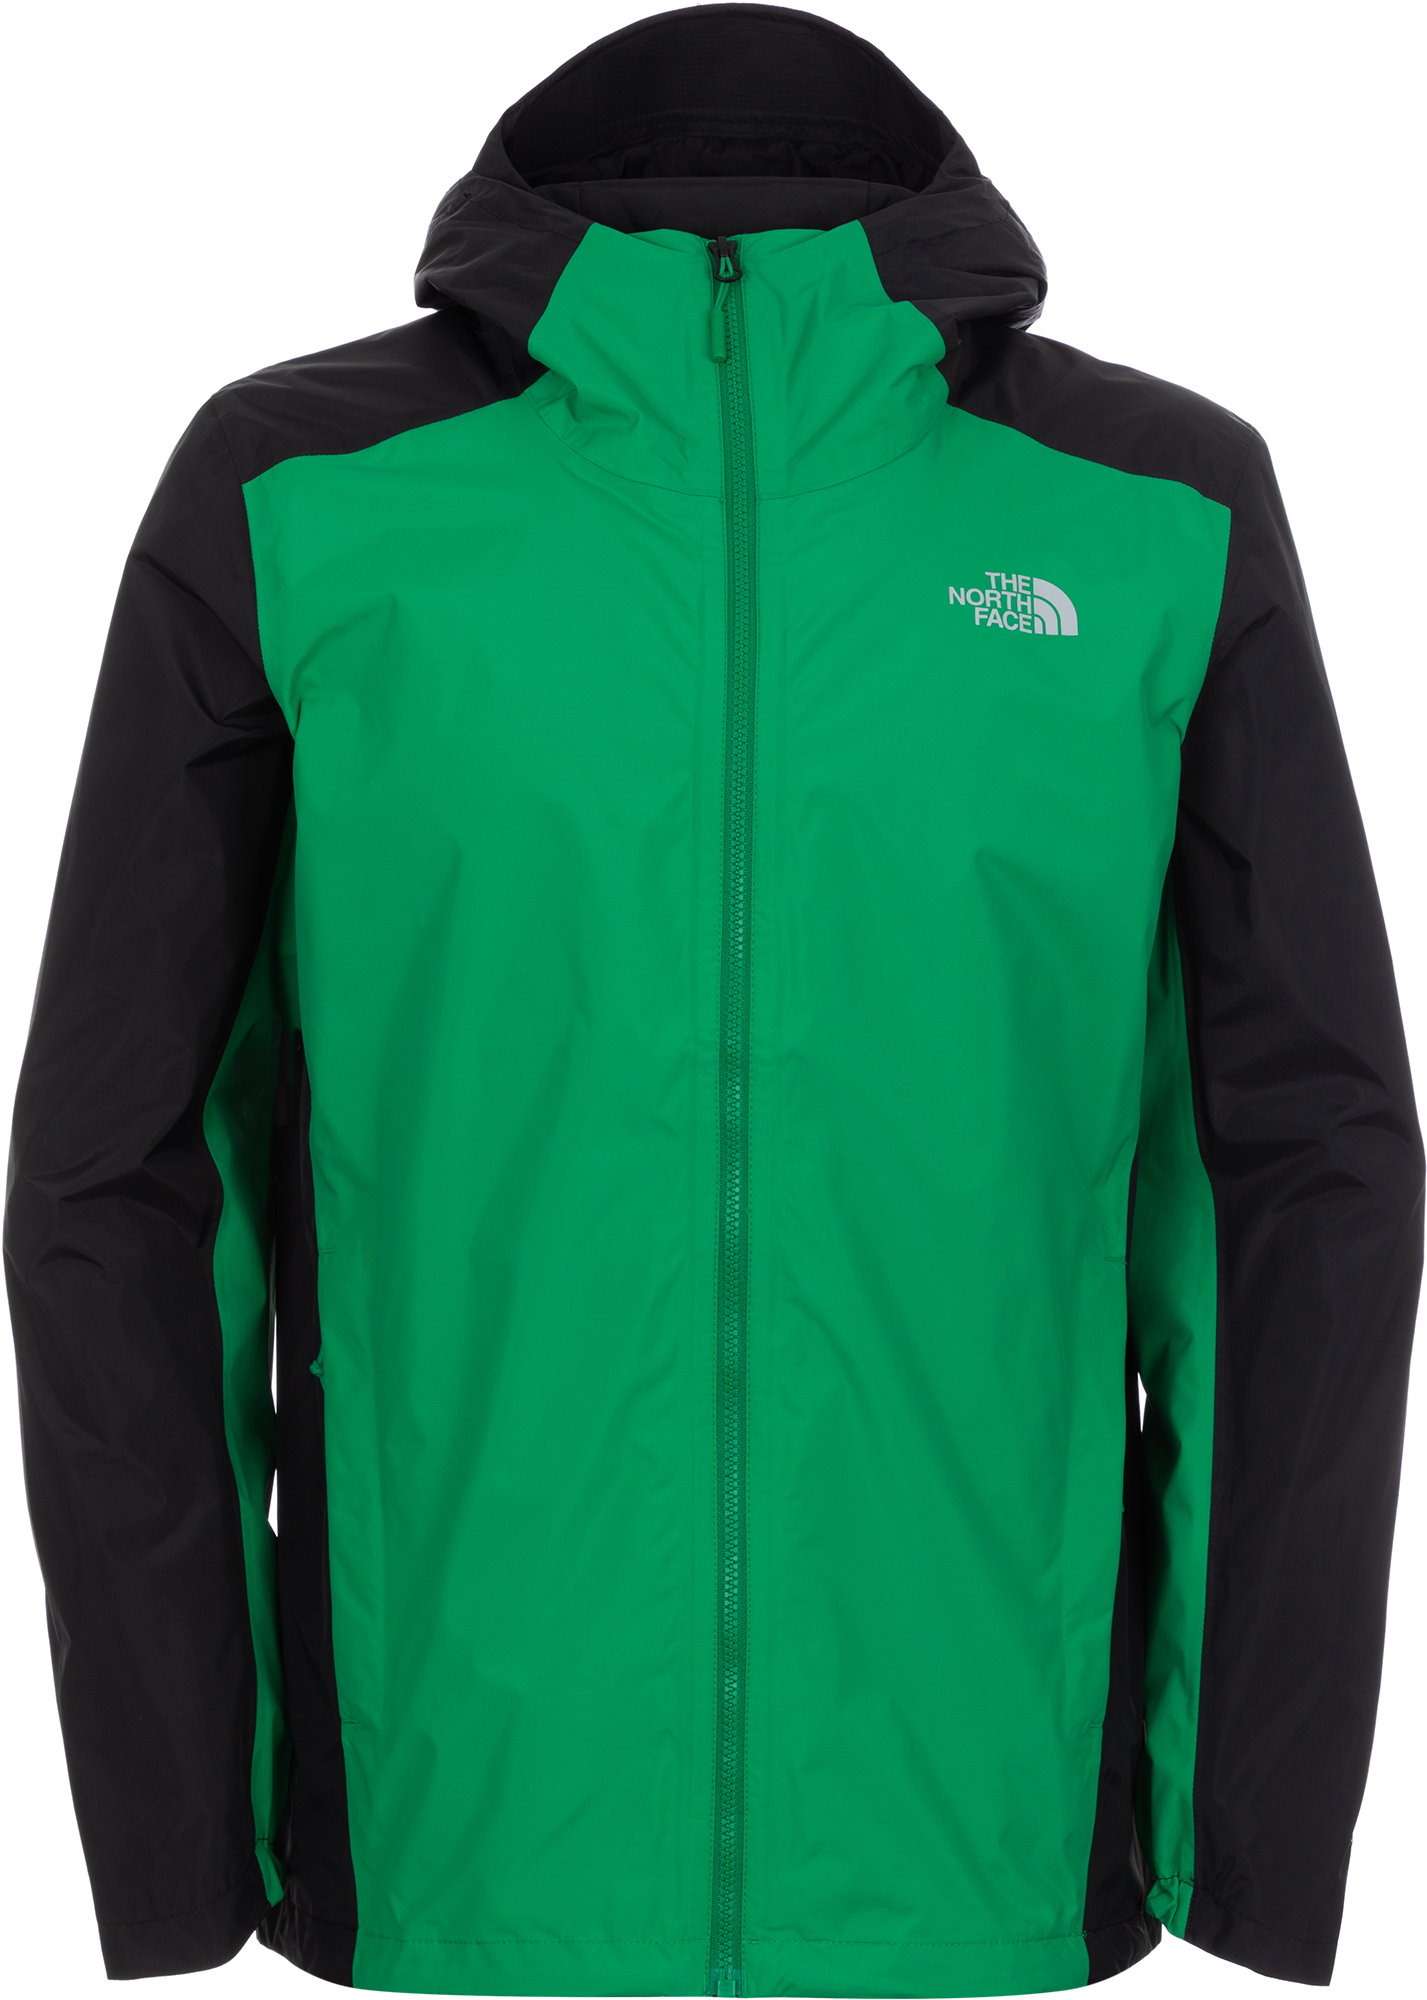 The North Face Ветровка мужская The North Face Ondras 2L, размер 52 цена